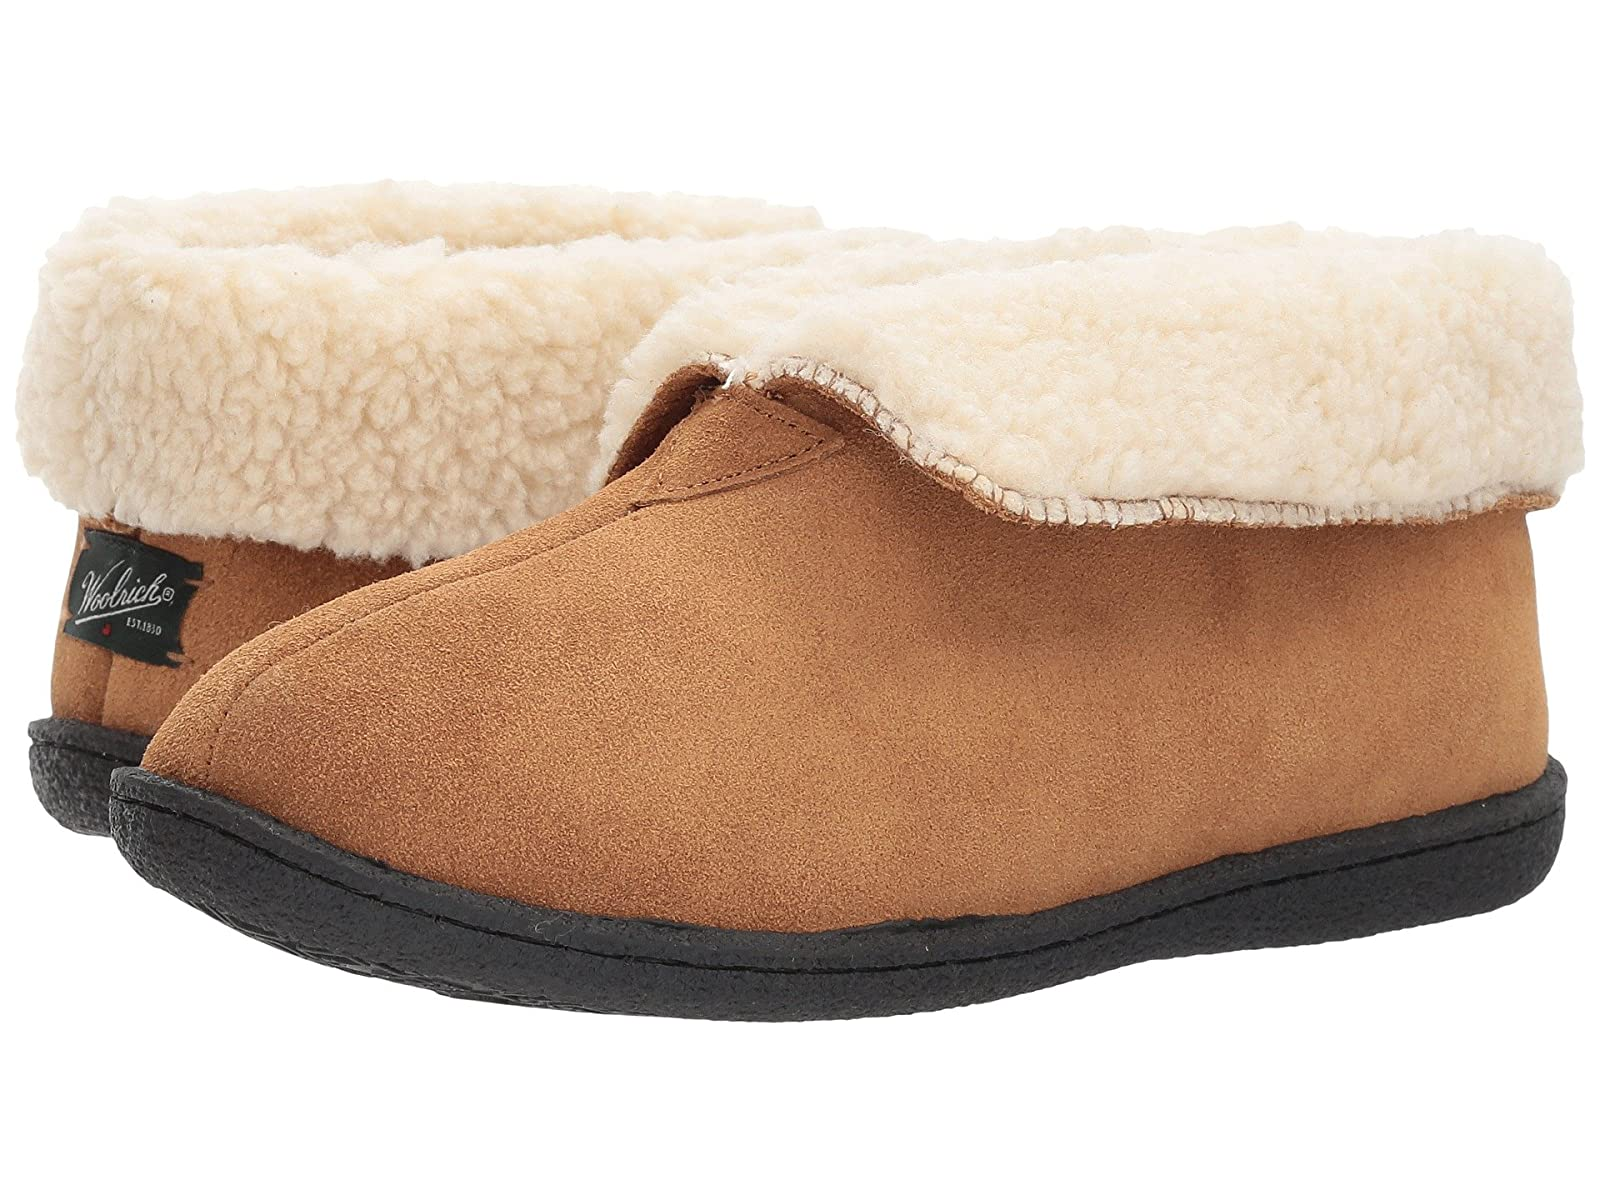 Woolrich Lodge Bootie IICheap and distinctive eye-catching shoes